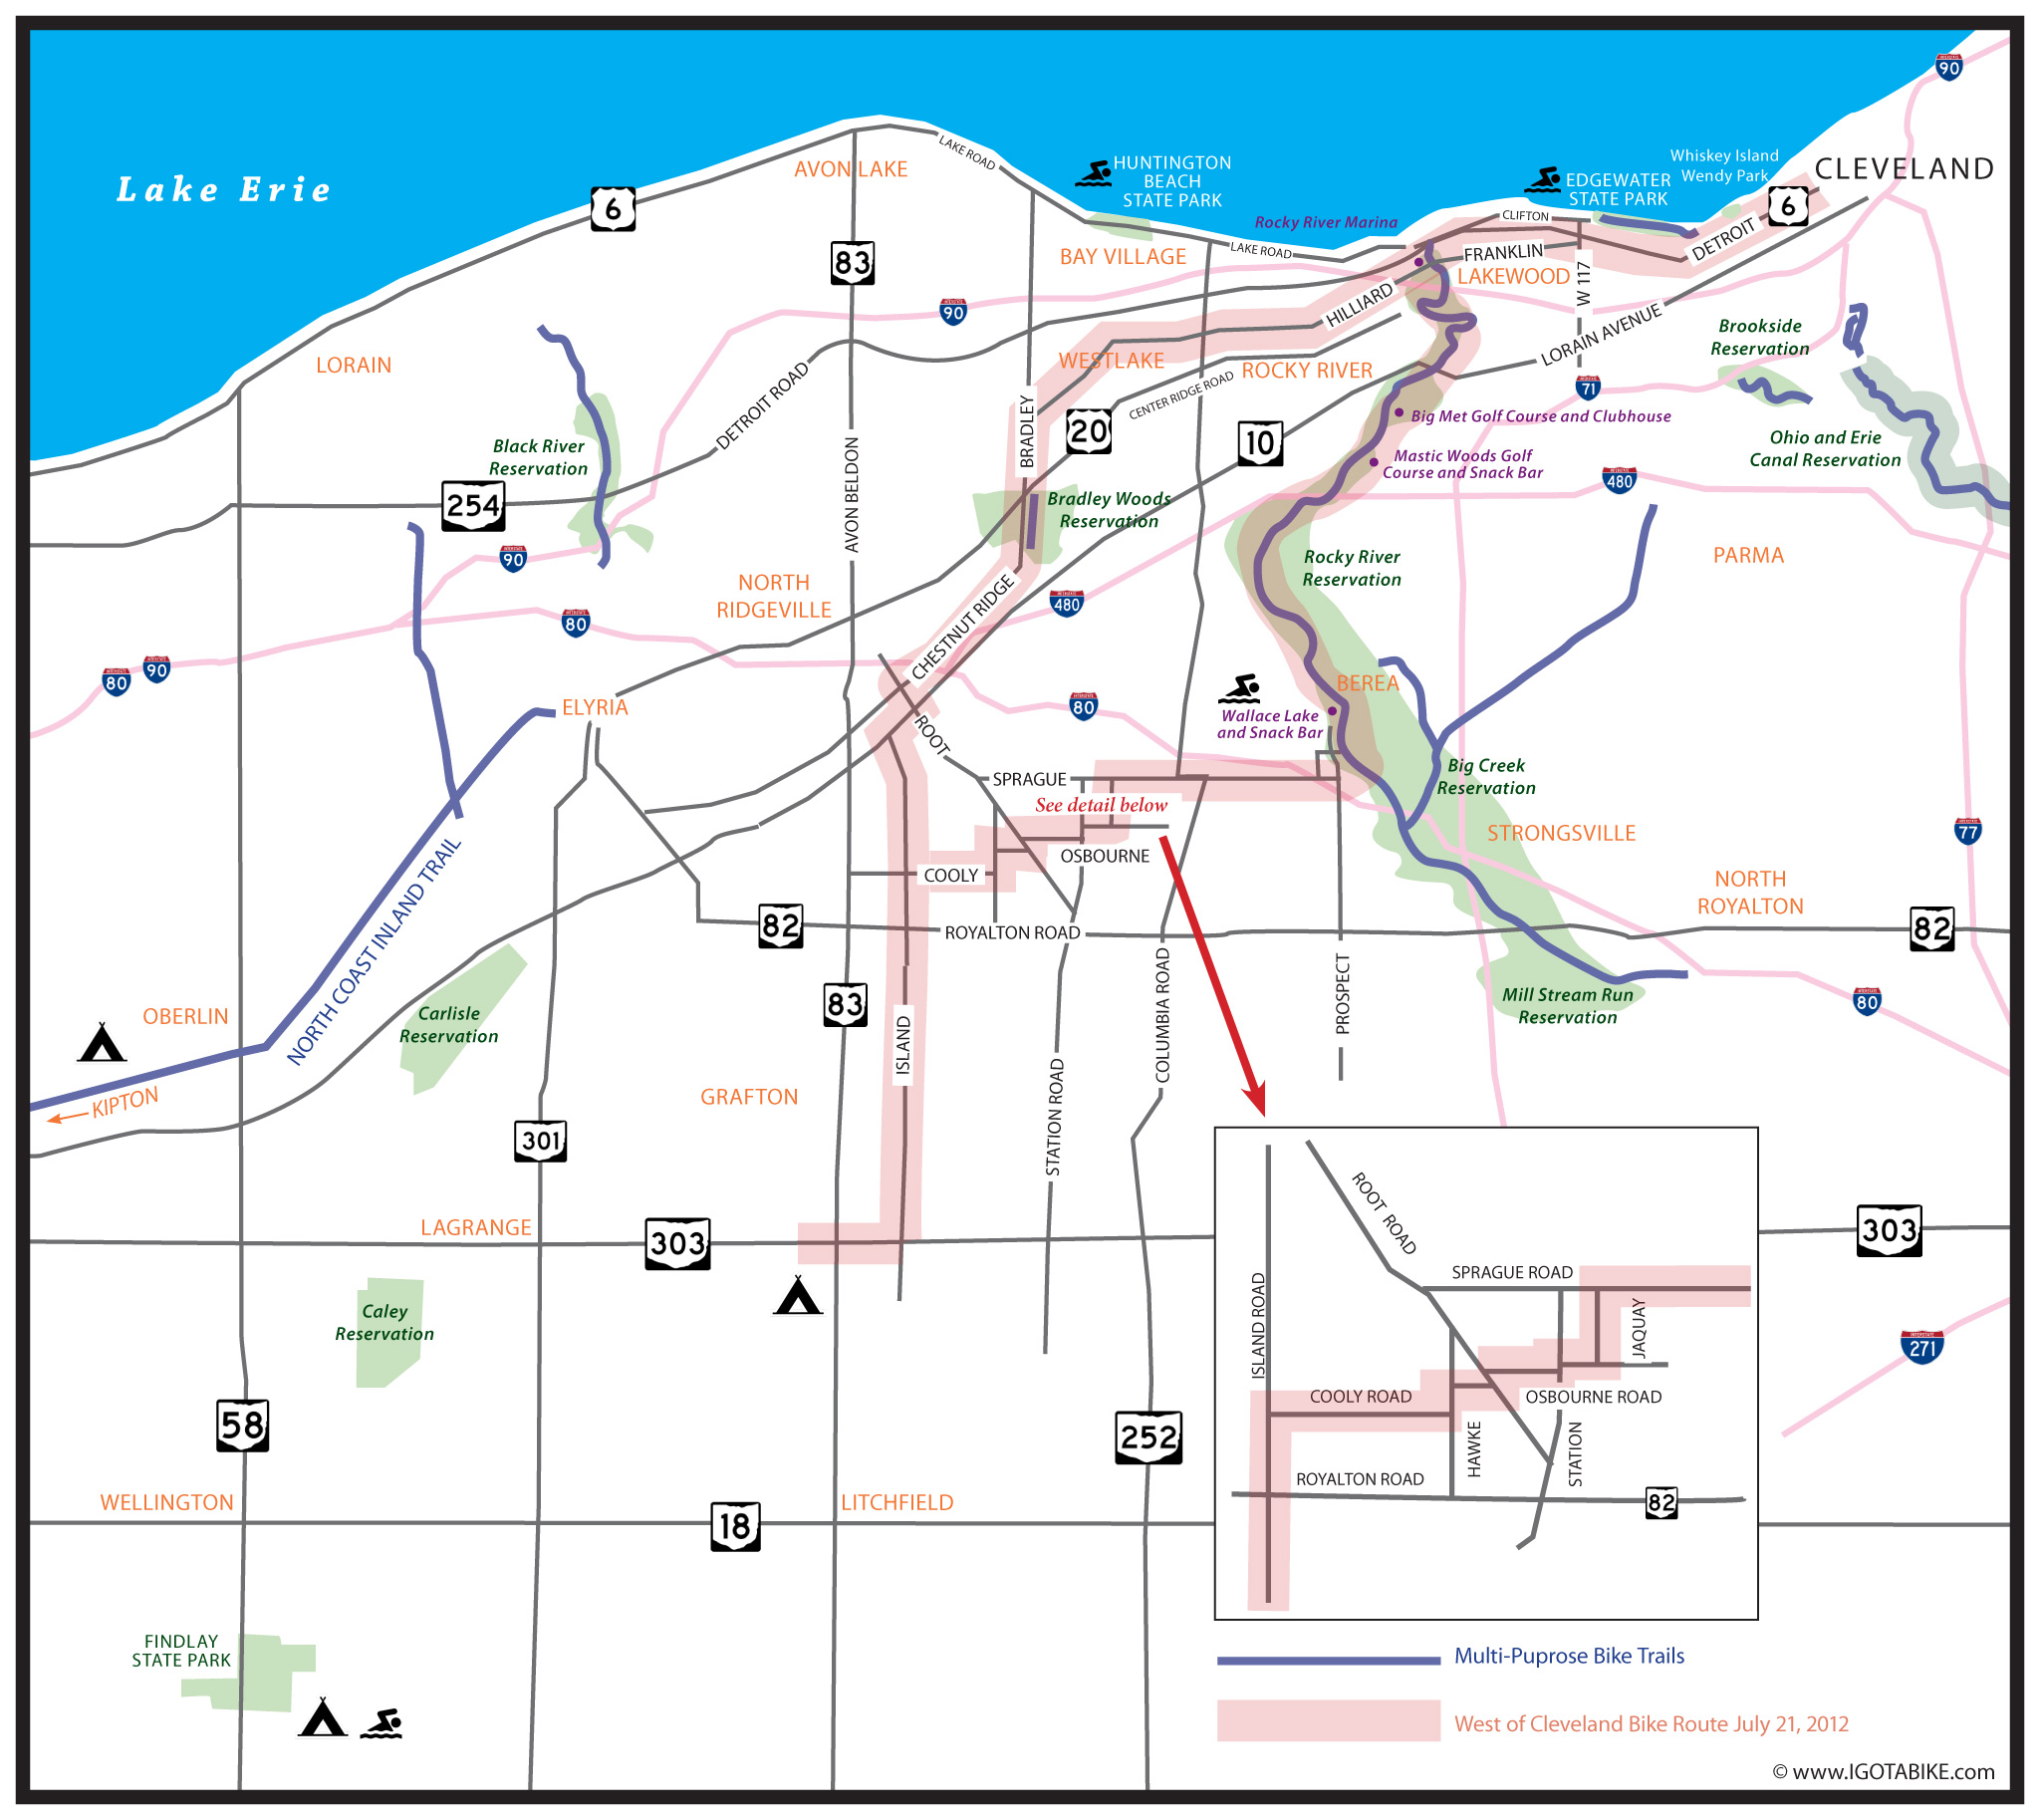 Bicycle route with map for riding west from Cleveland into Lorain